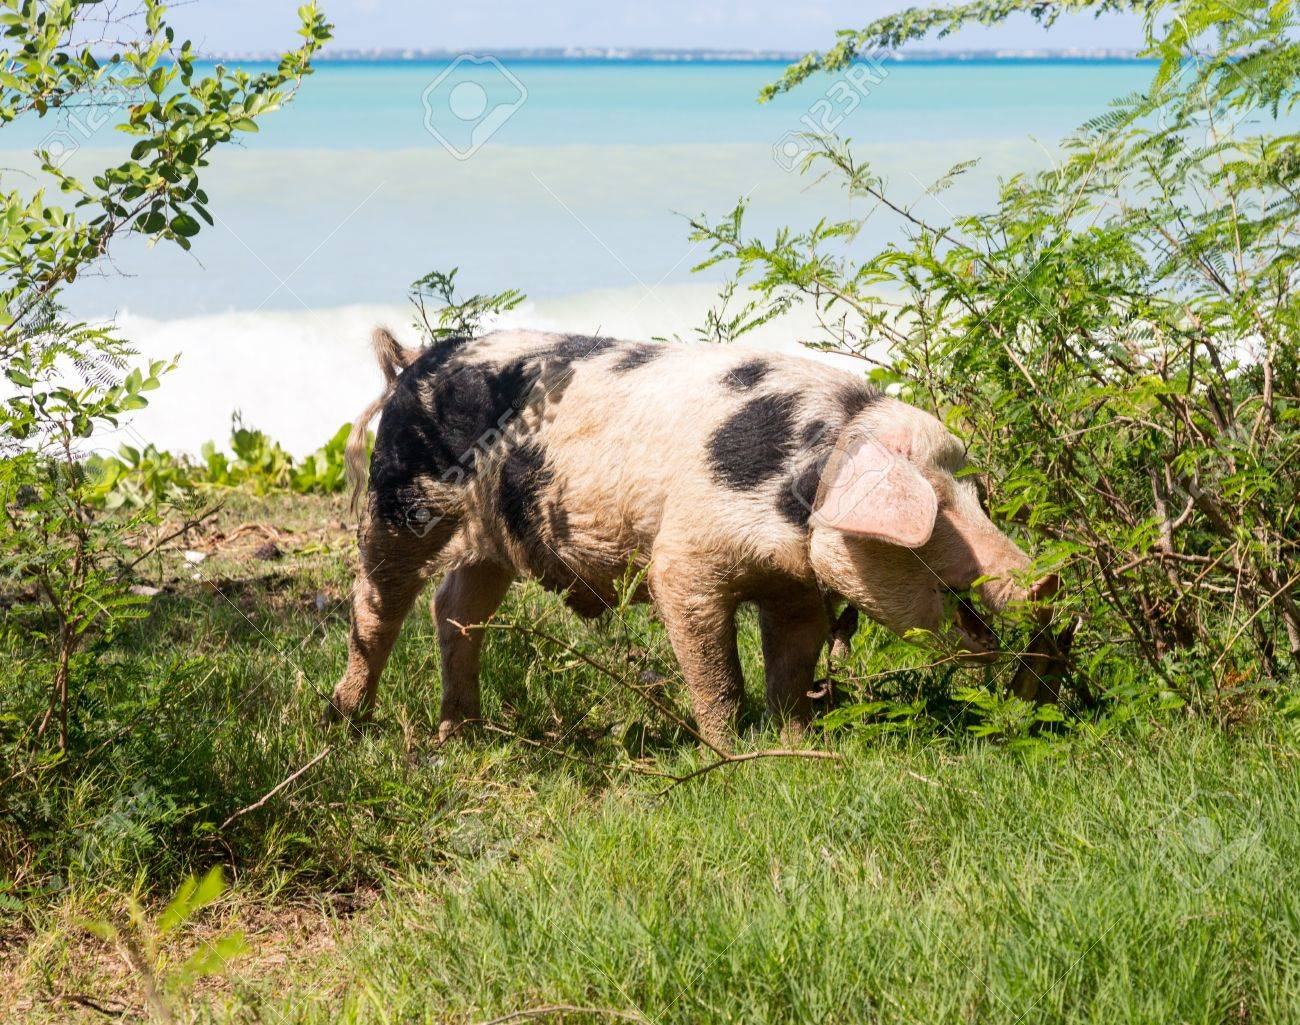 wild pig eating bushes by sandy beach and ocean on st martin